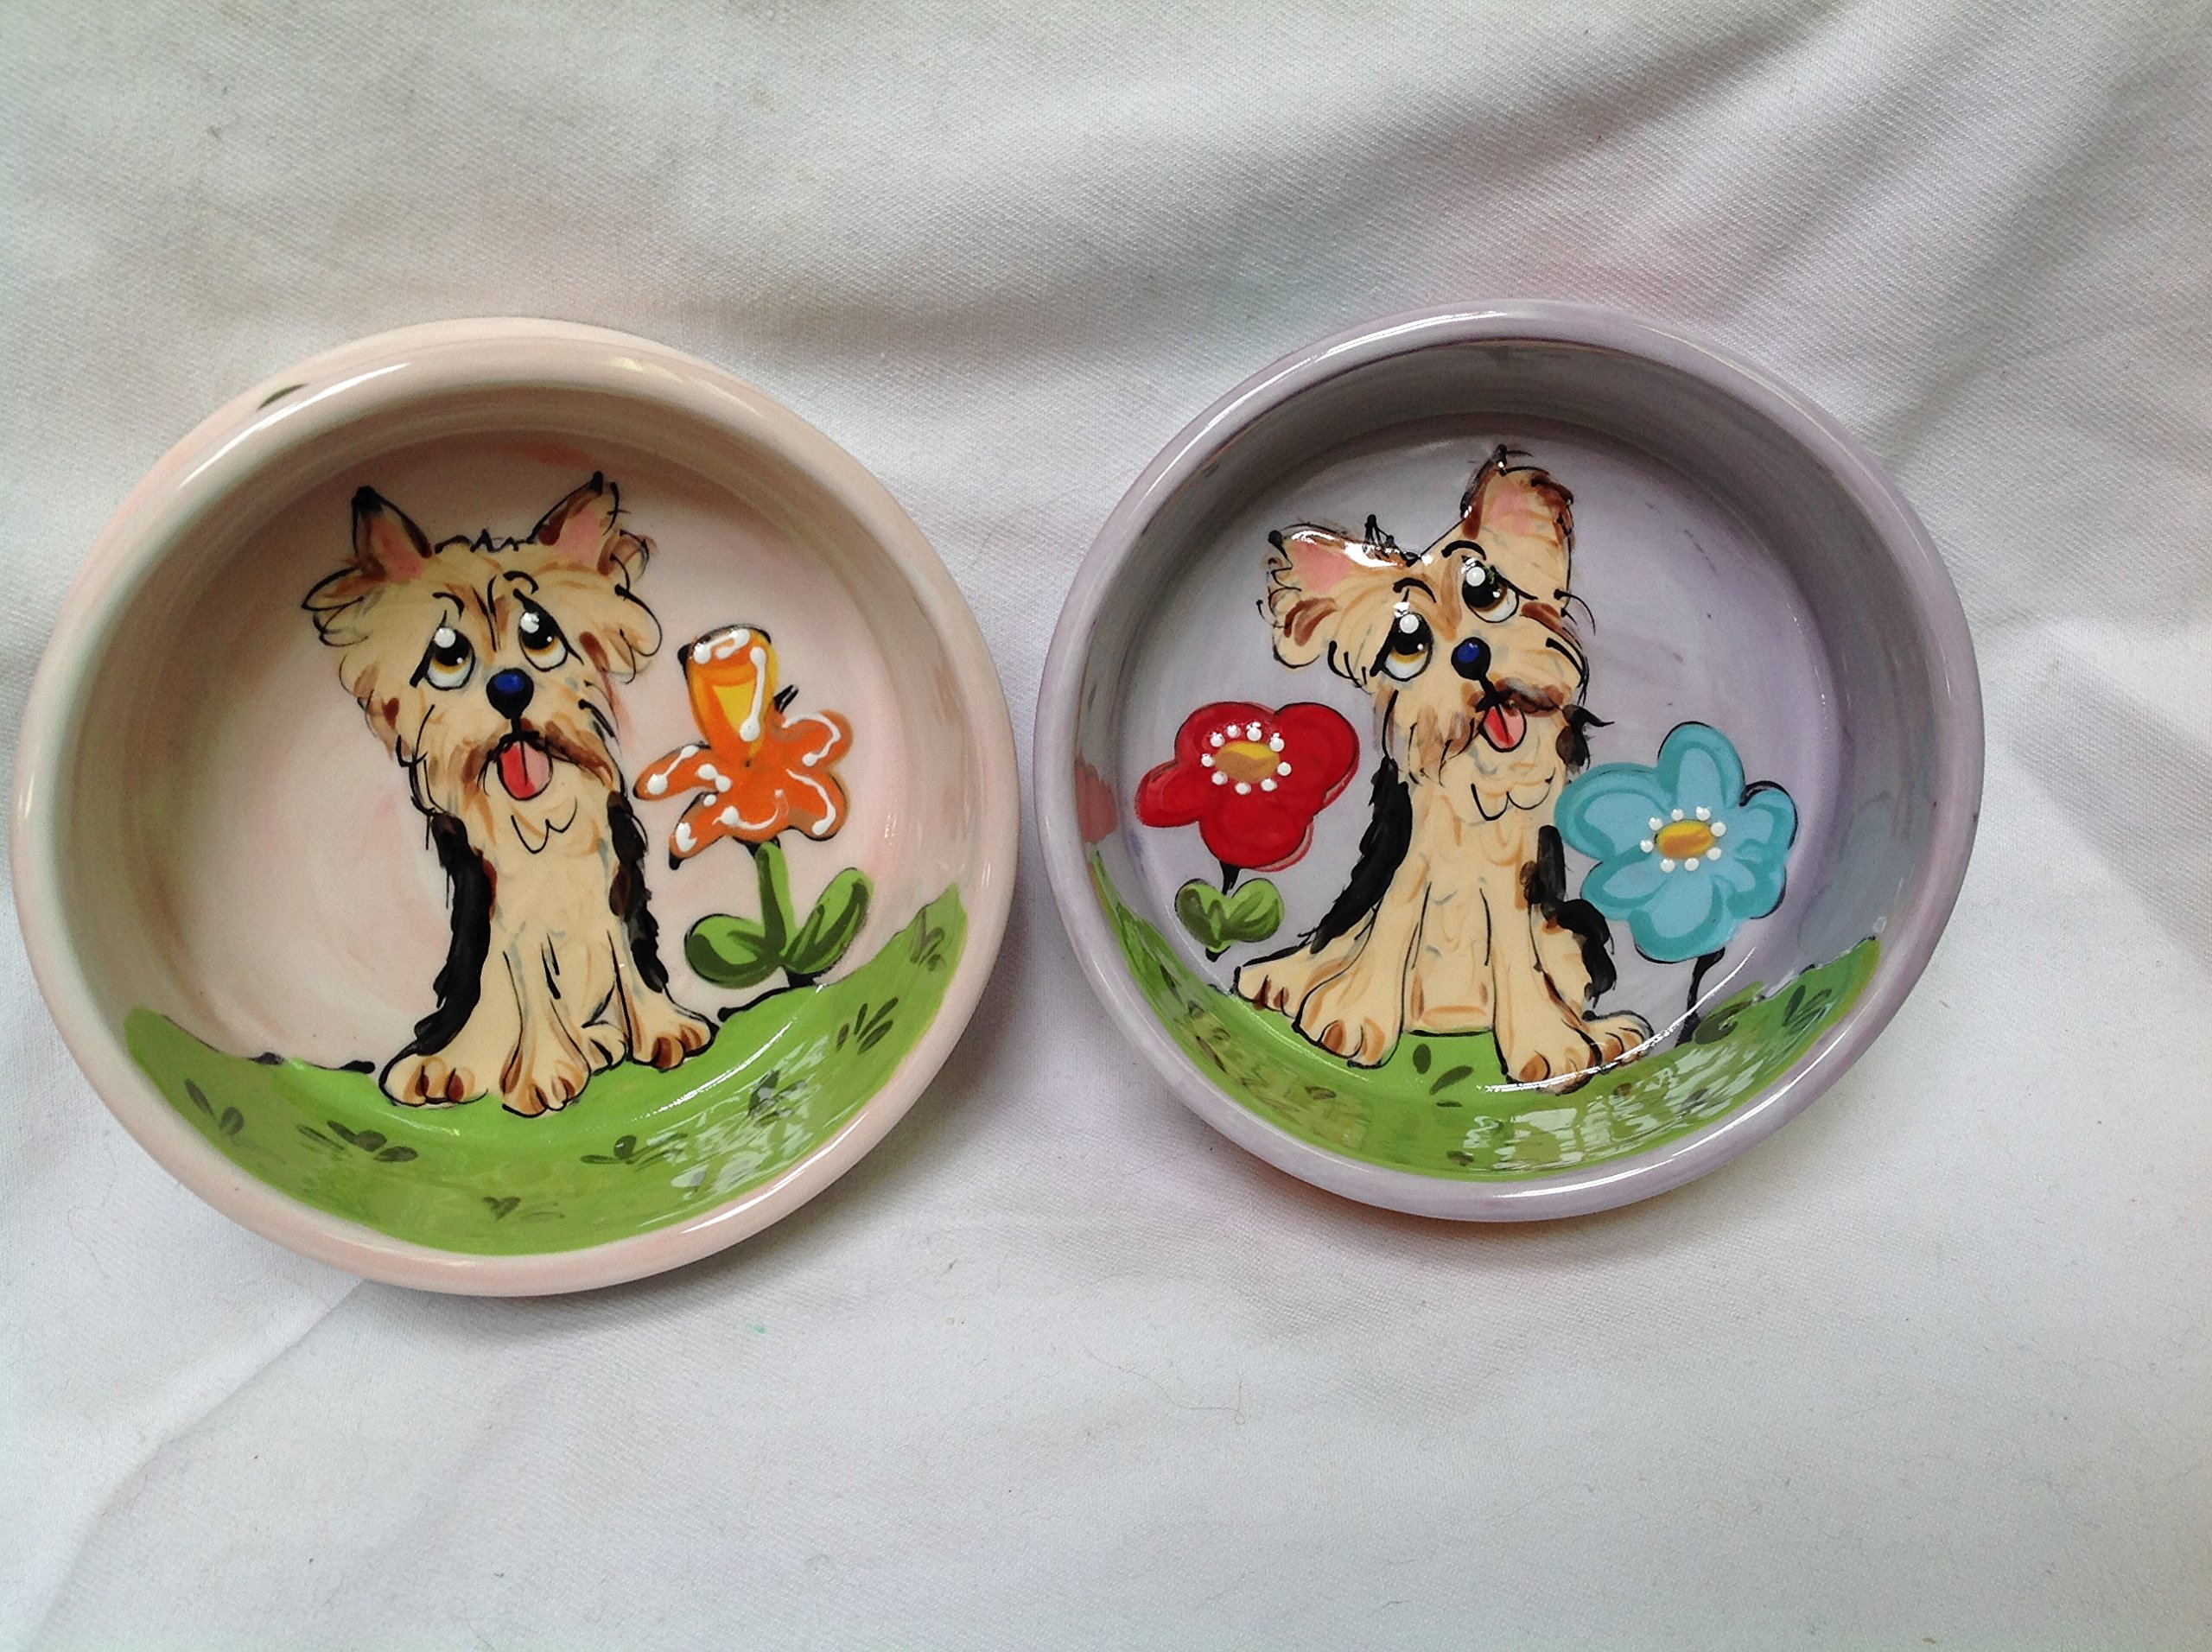 Yorkshire Terrier 8'' and 6'' Pet Bowls for Food and Water. Personalized at no Charge. Signed by Artist, Debby Carman.